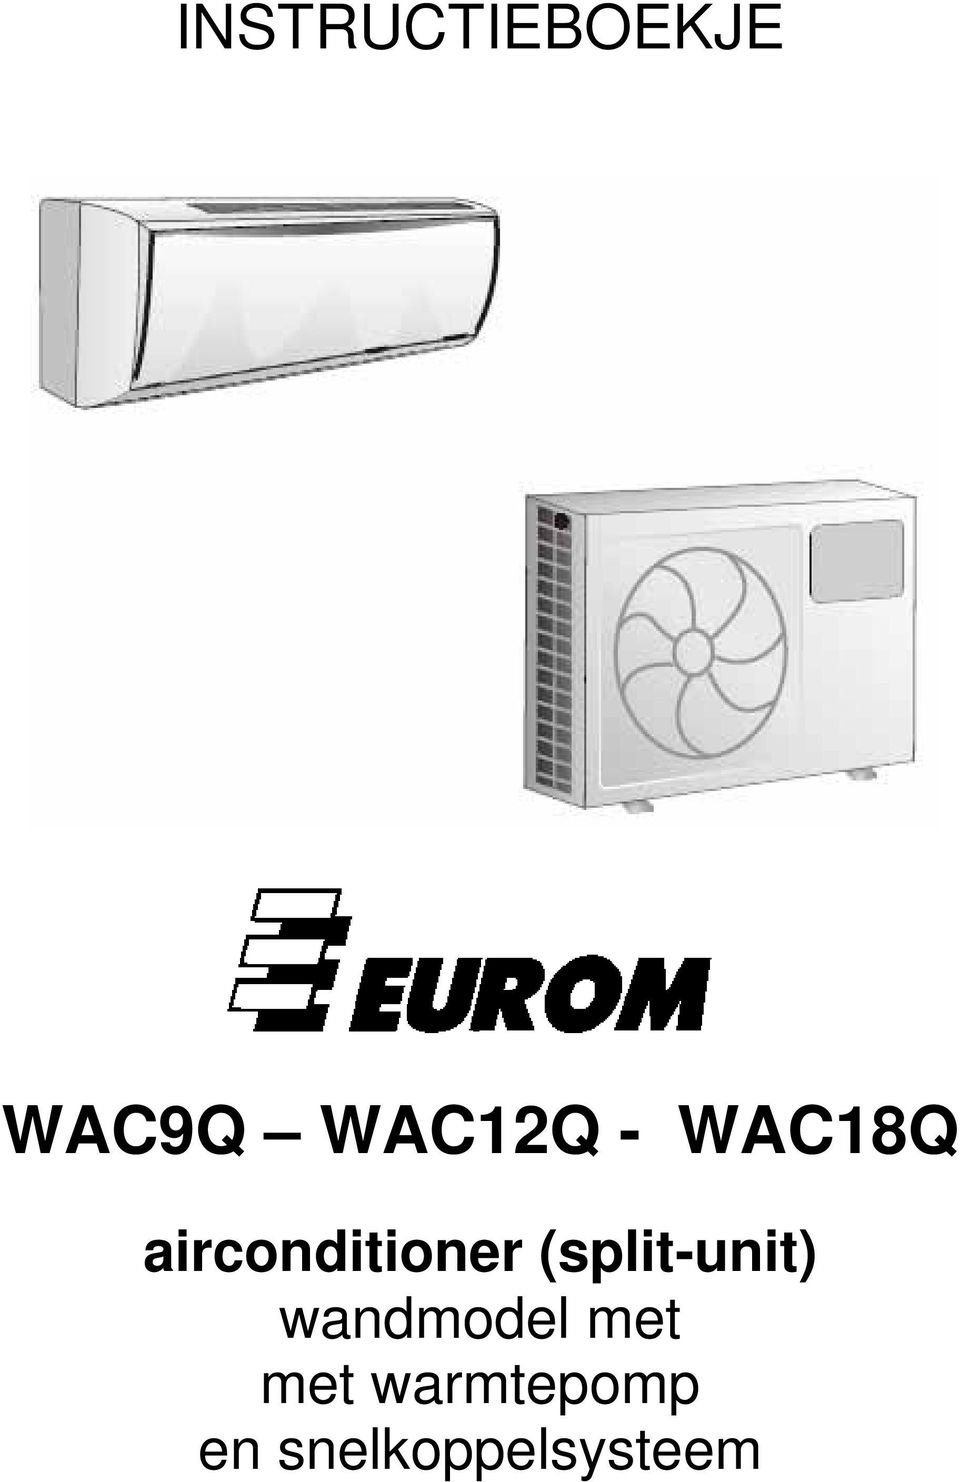 airconditioner (split-unit)